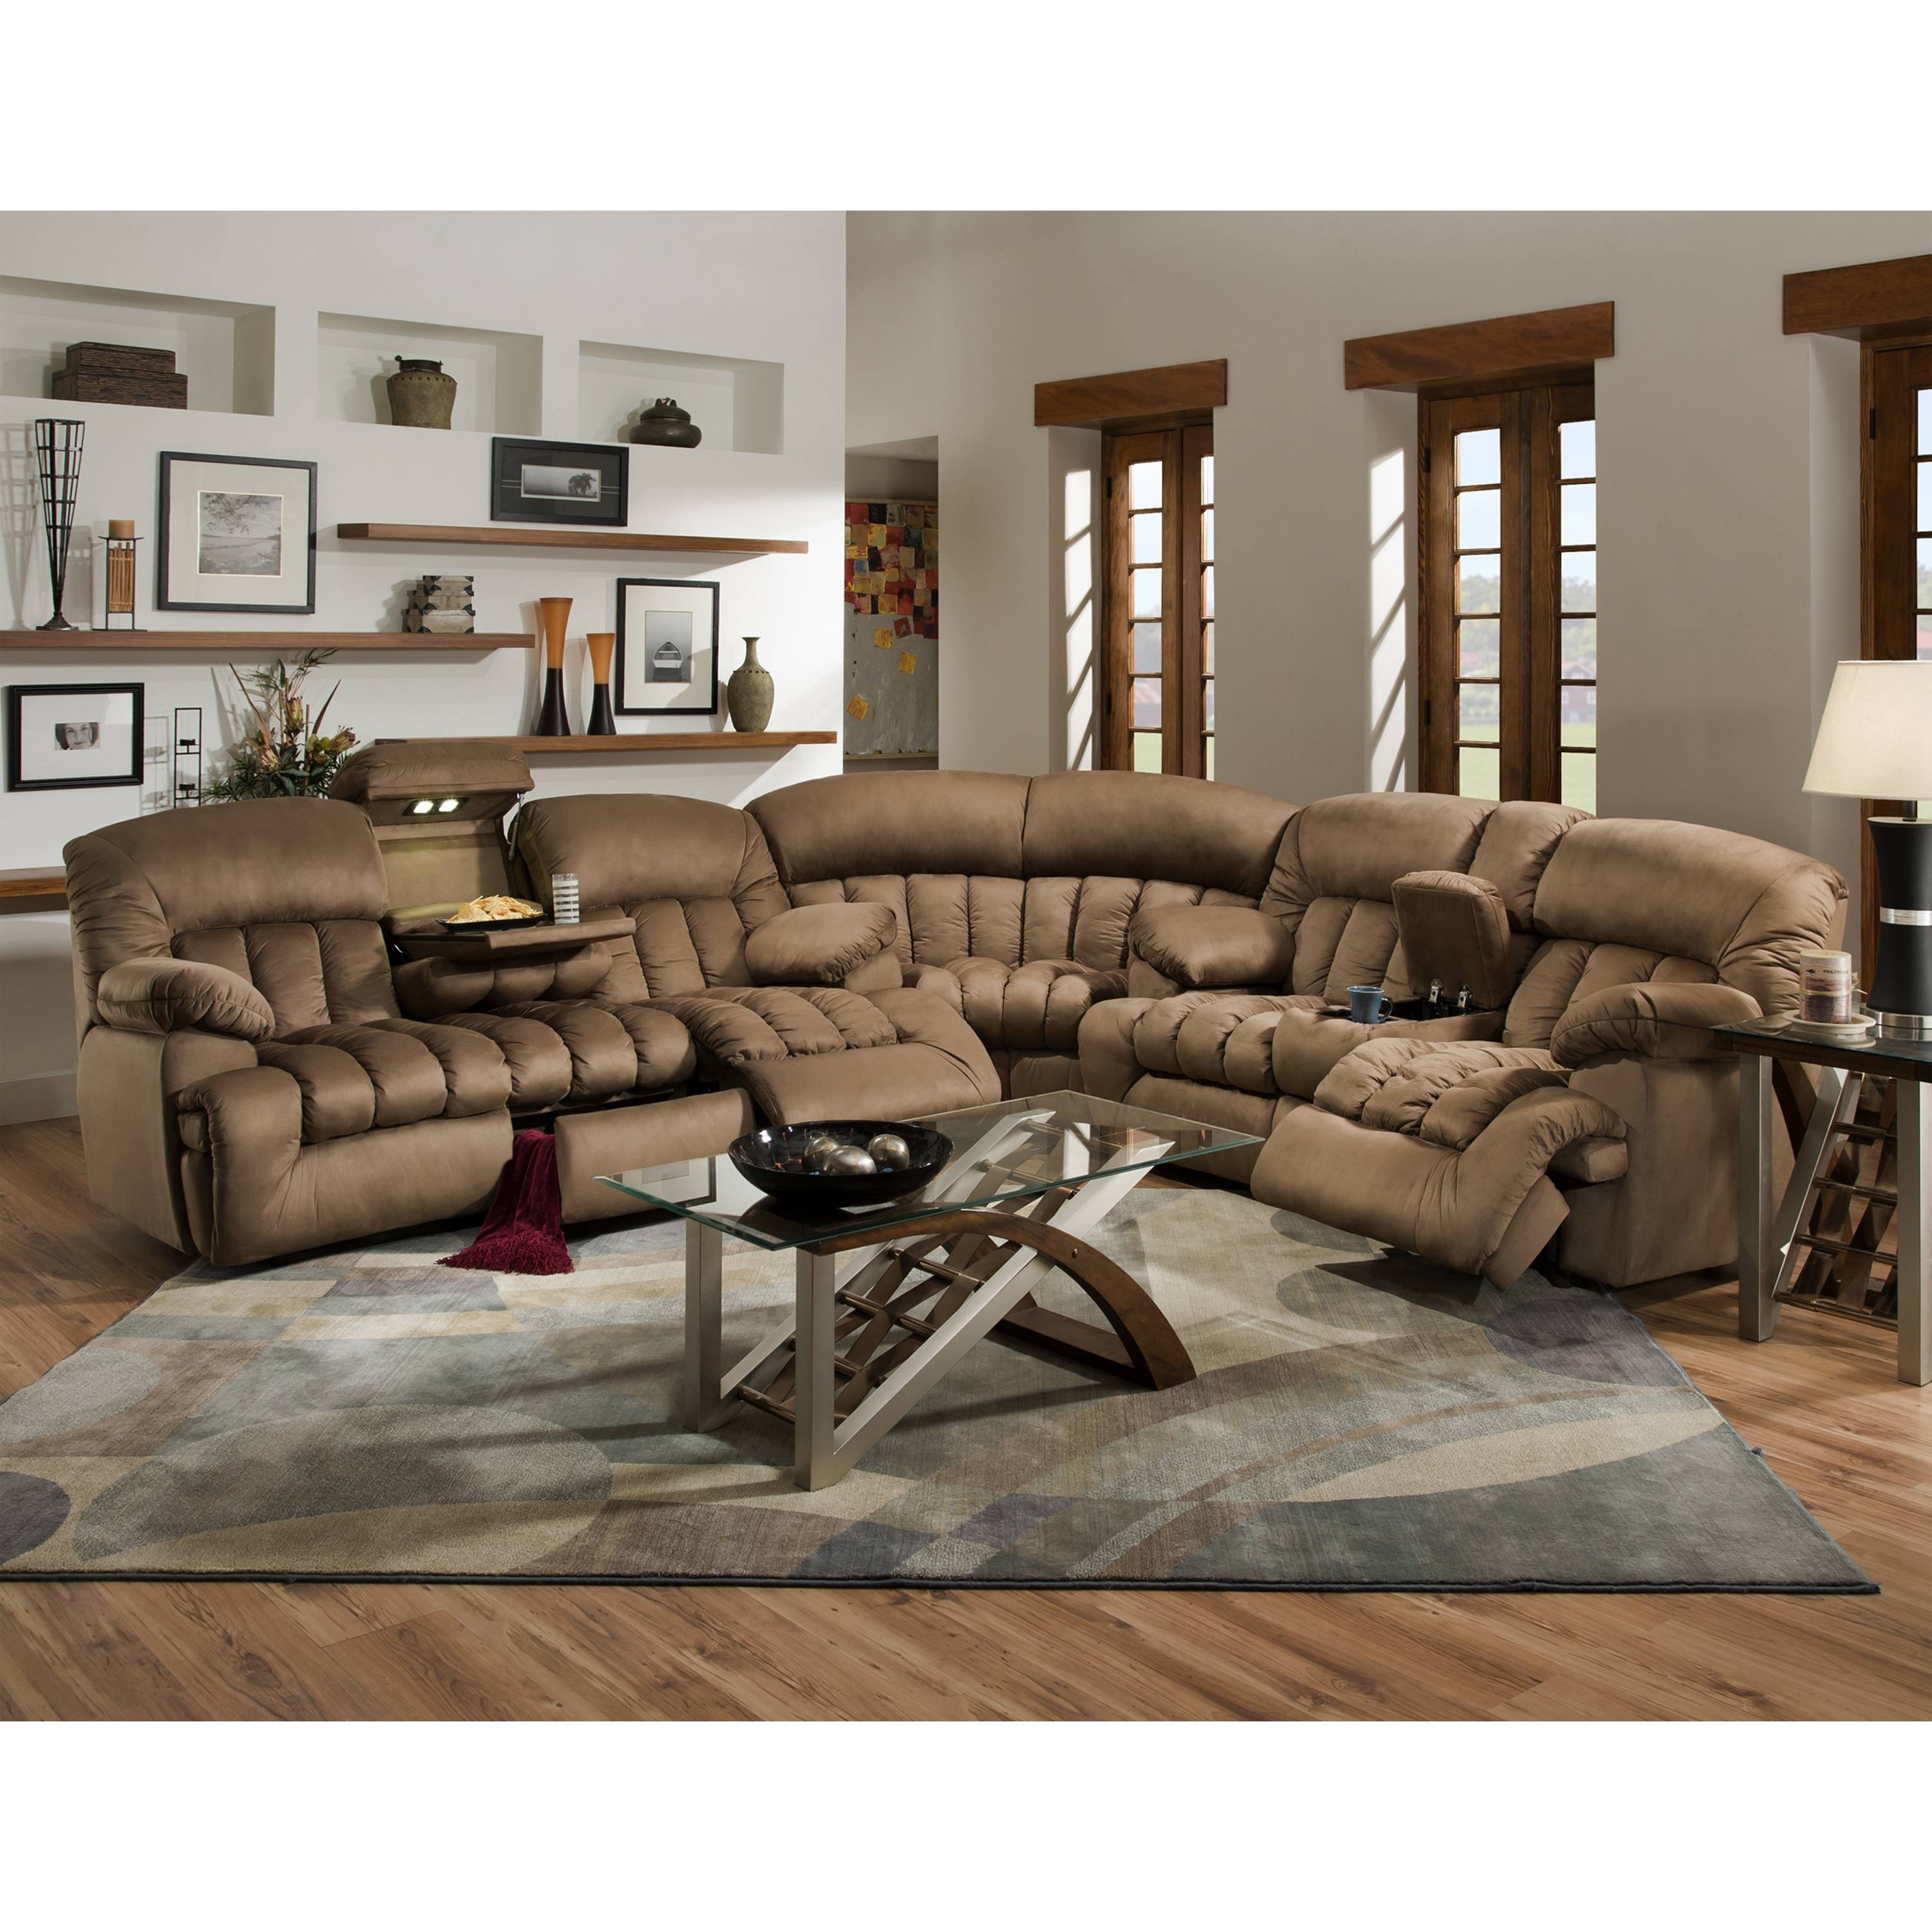 79 Exciting Large Sectional Sofas With Recliners Home Design | Hoozoo Throughout Florence Large Sofas (Photo 17 of 30)